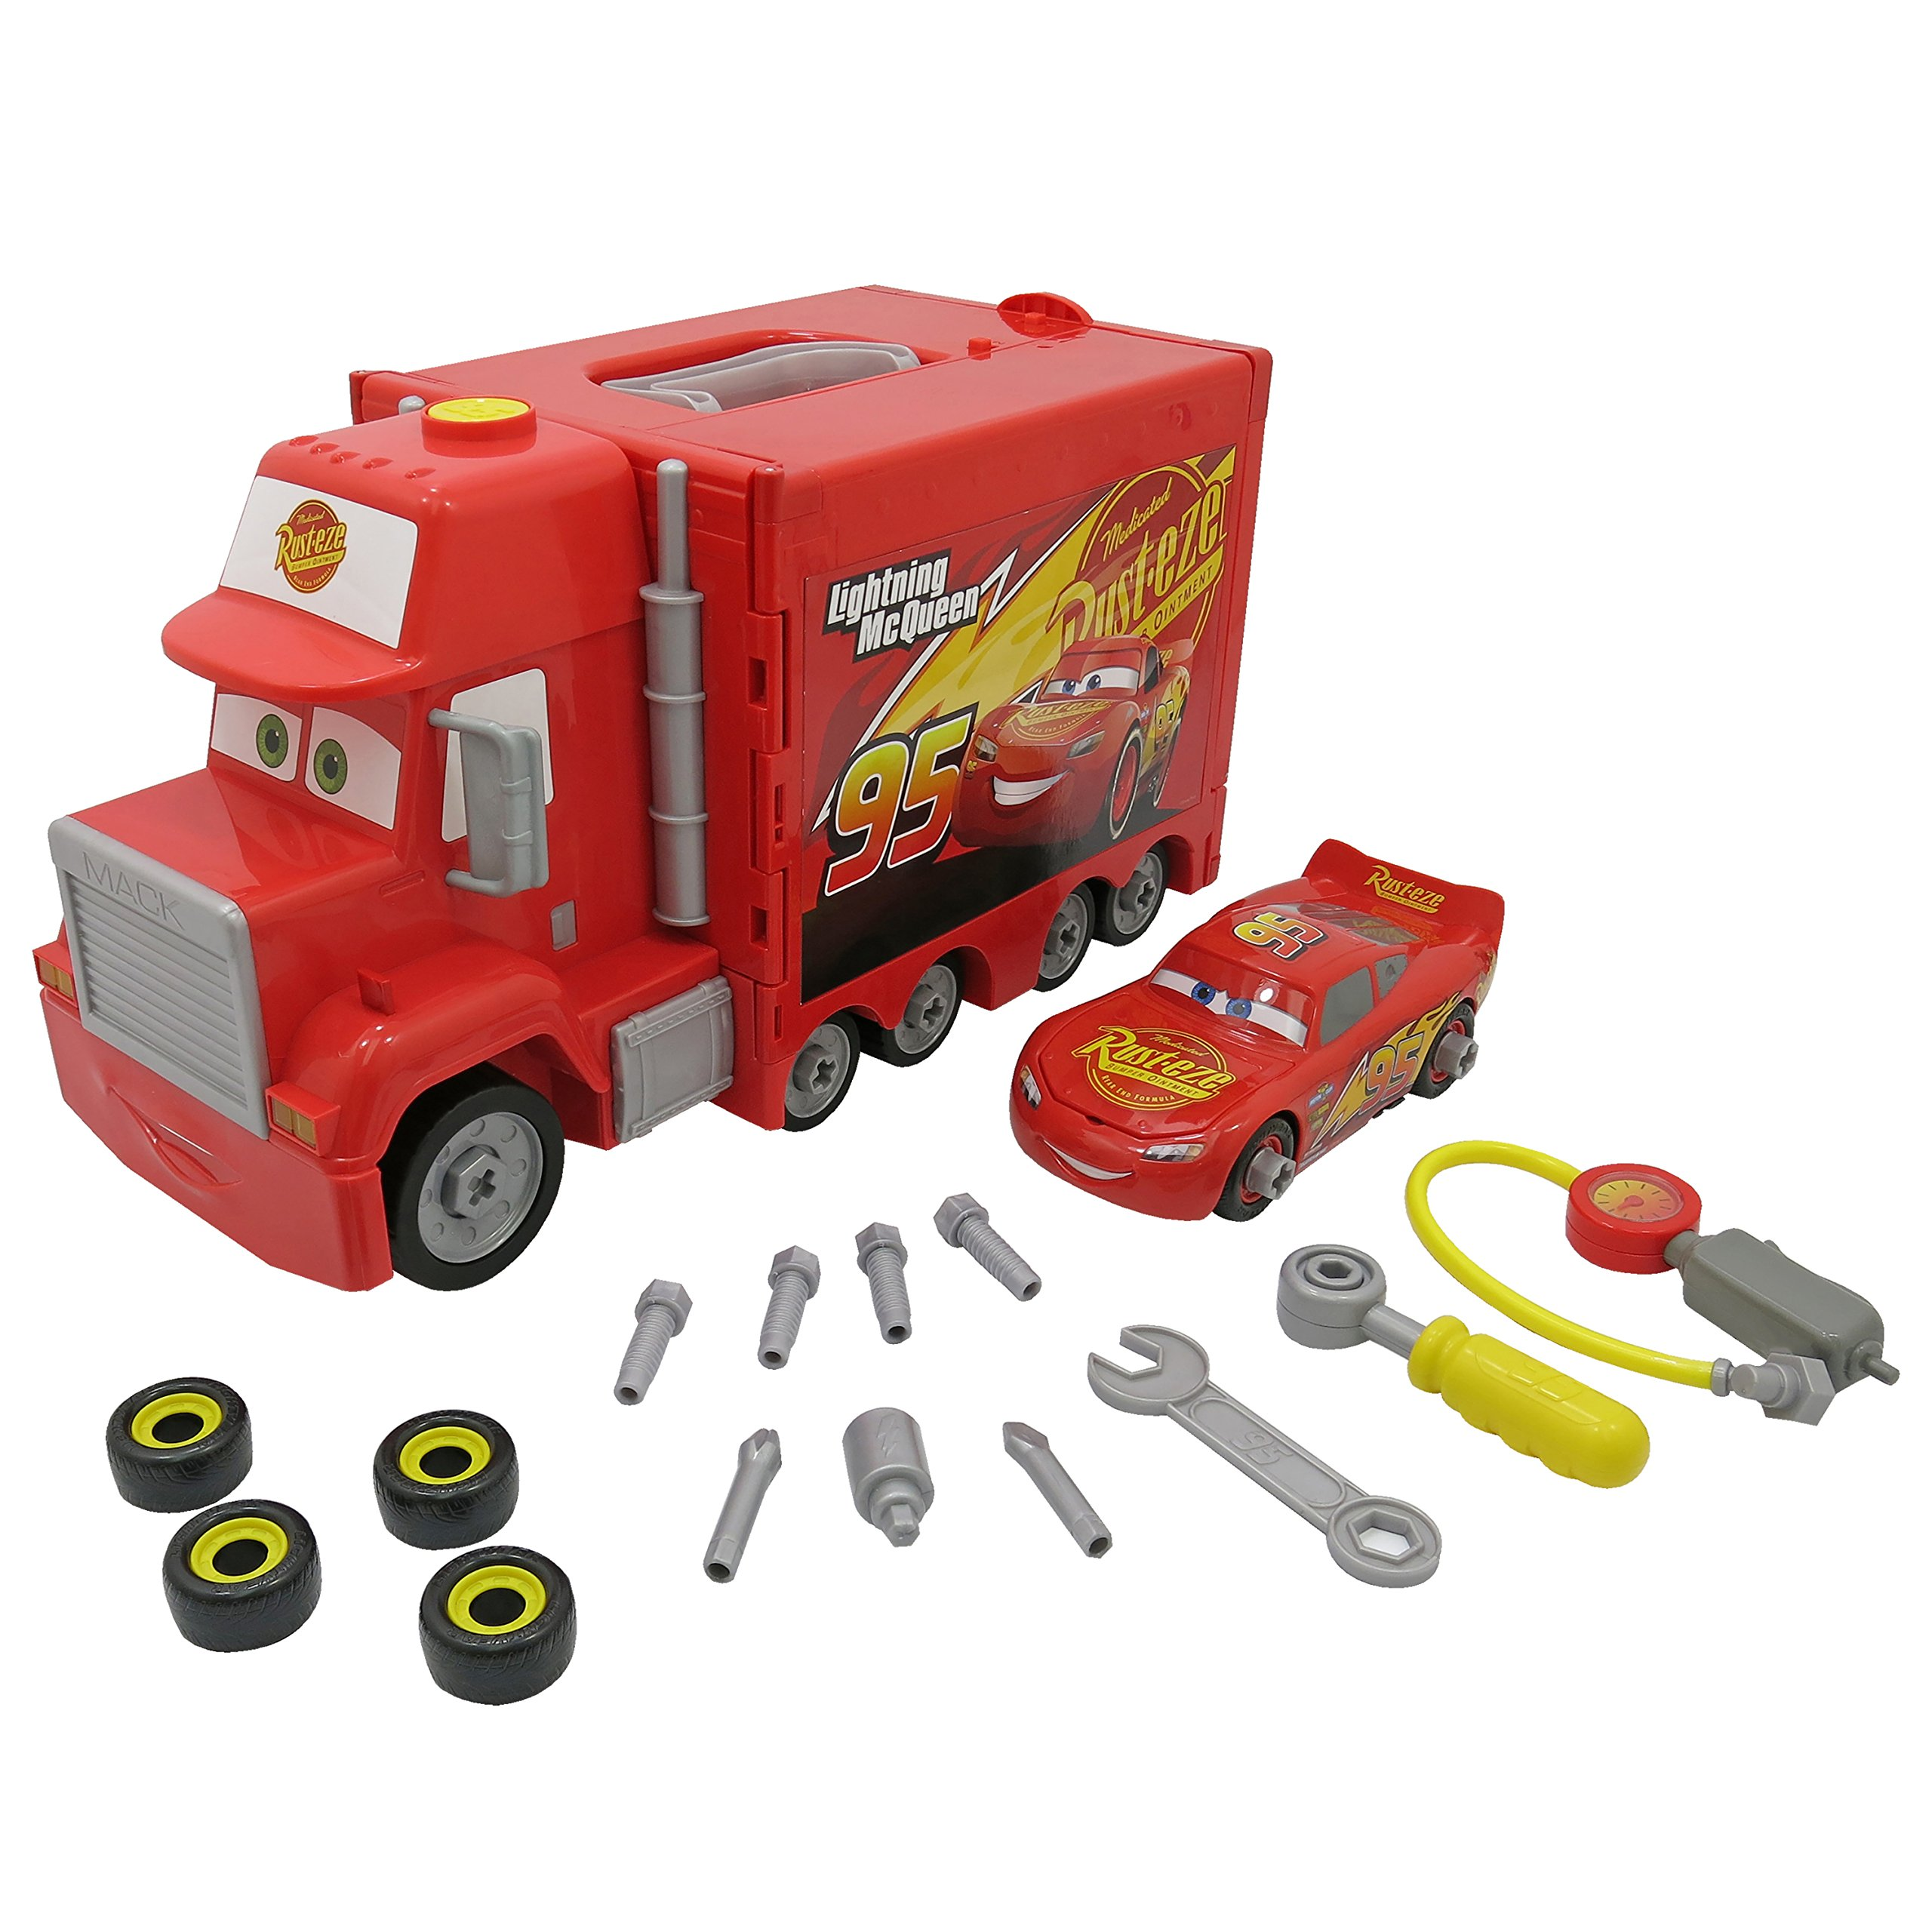 Cars 3 Macks Mobile Tool Center by Cars 3 (Image #4)